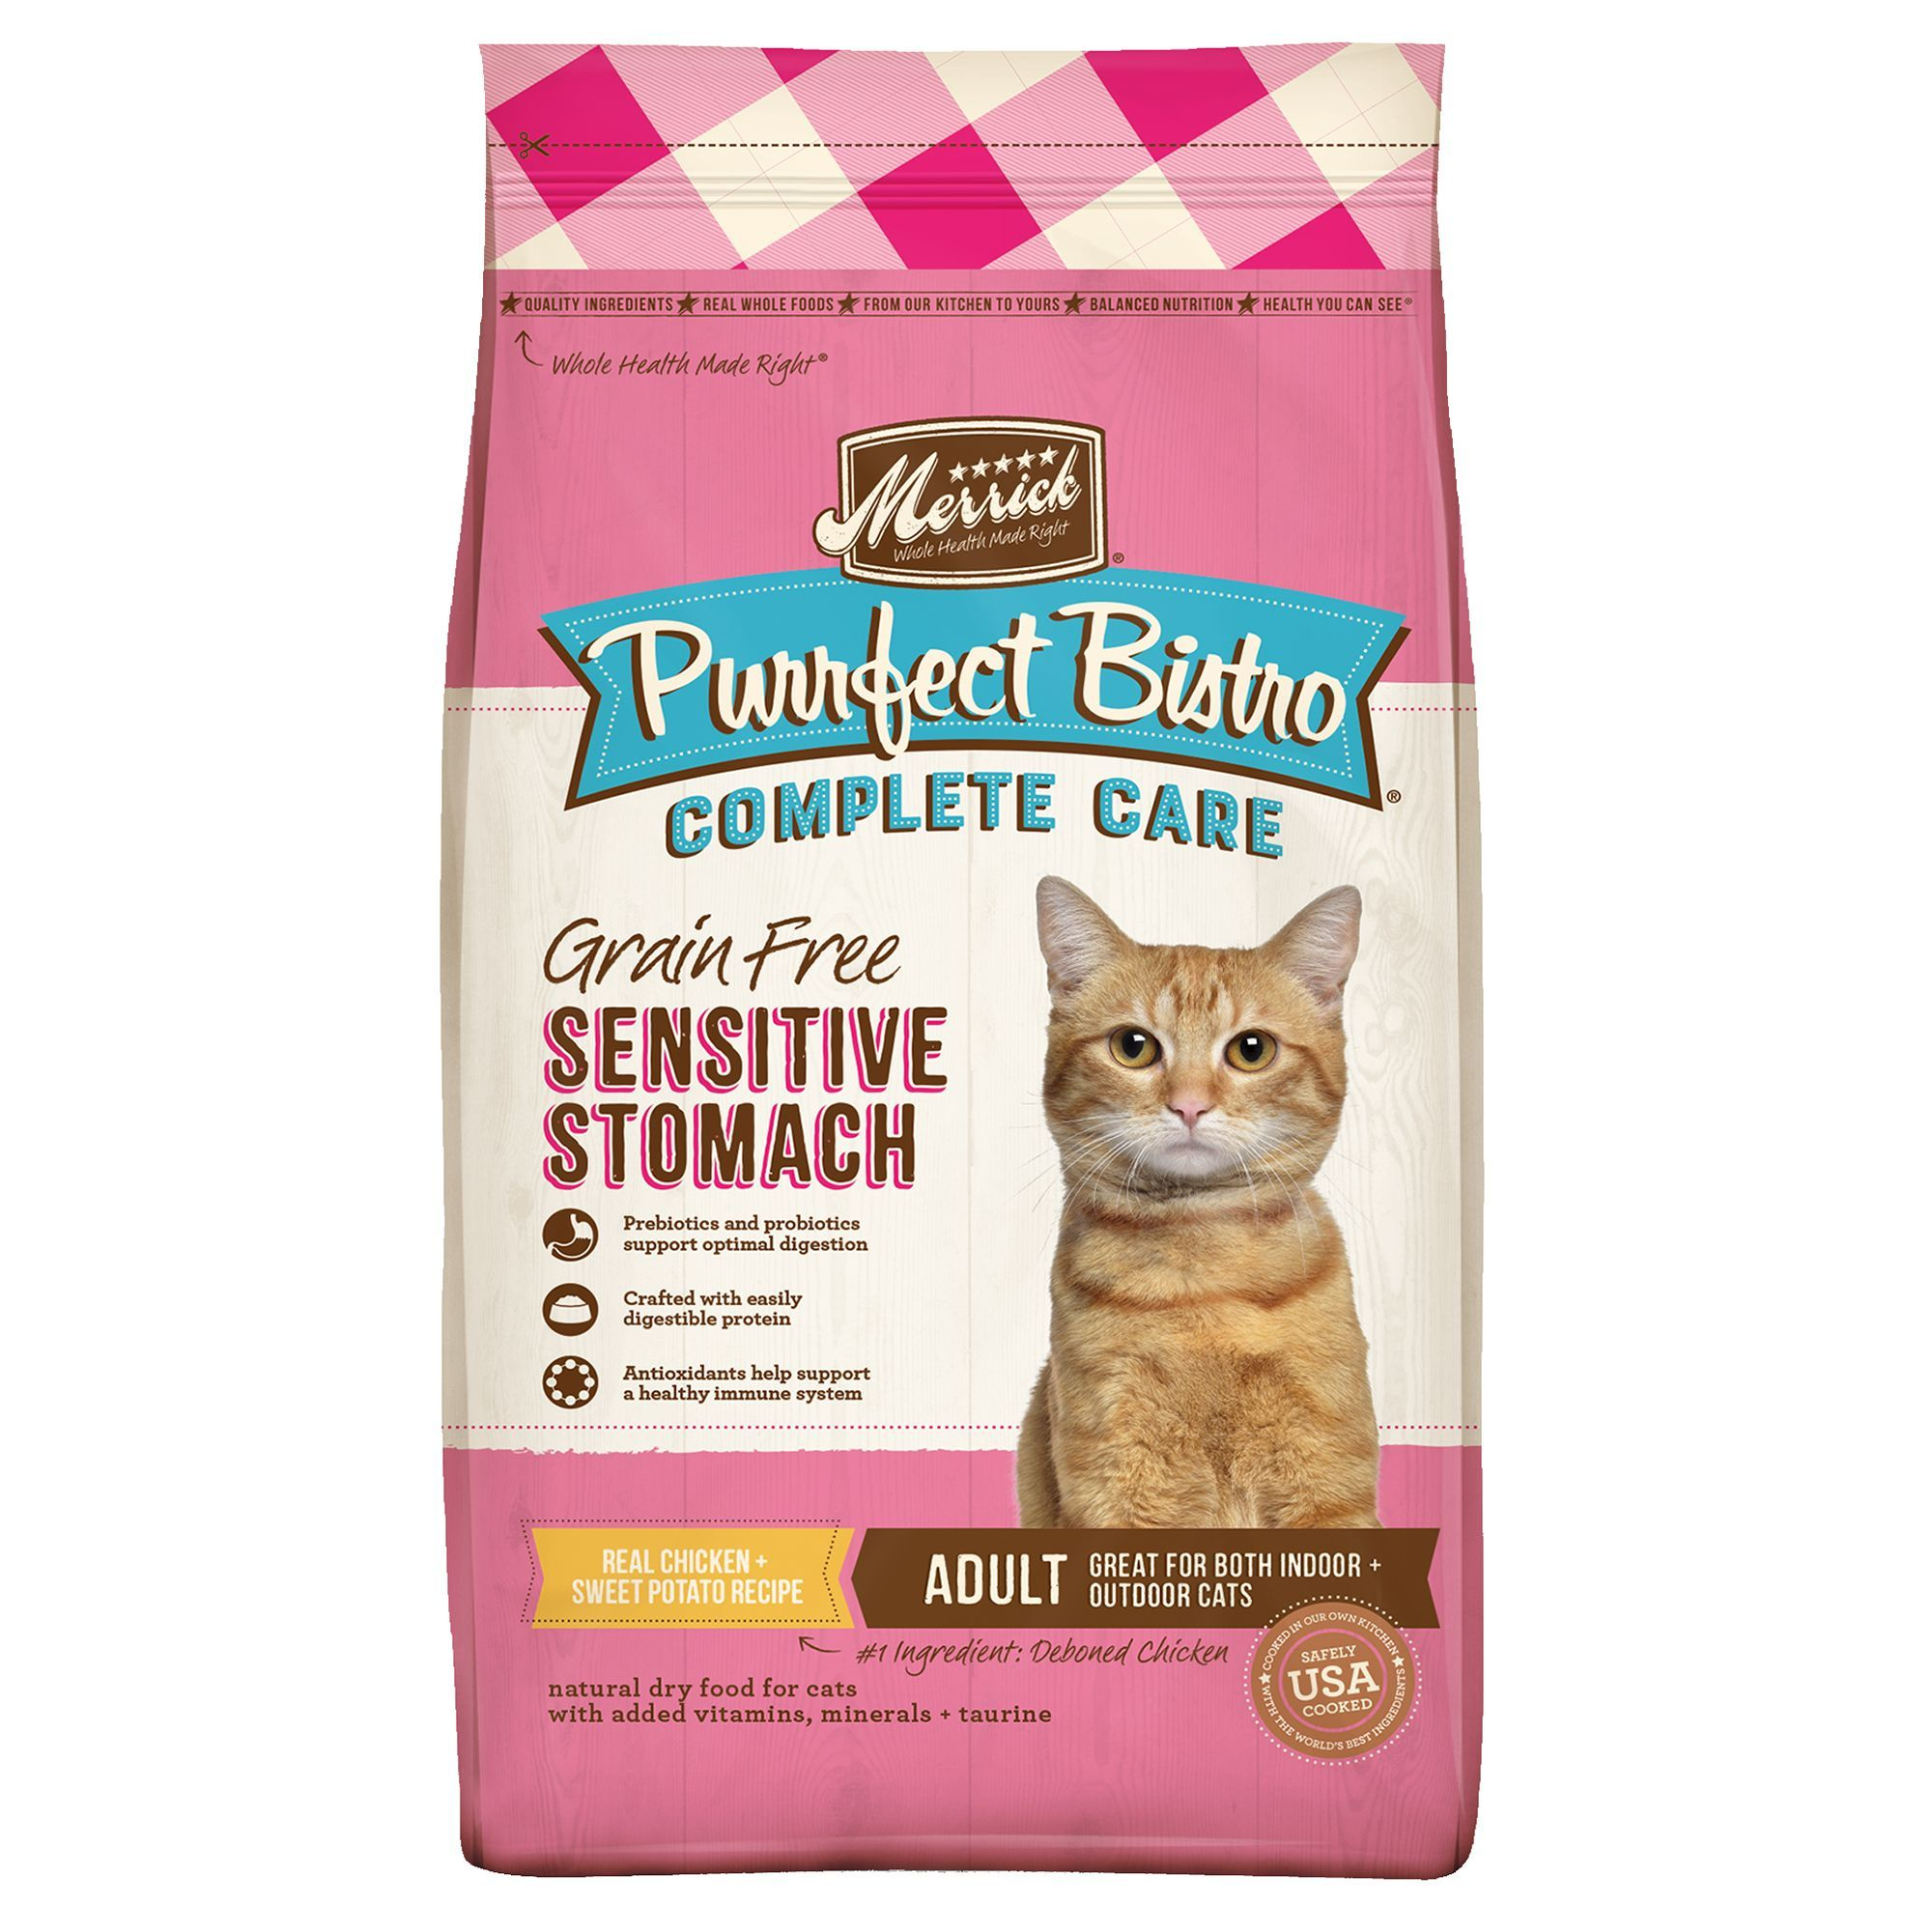 Merrick Purrfect Bistro Sensitive Stomach Adult Cat Food Natural Grain Free Size 12 Lb Cobalt Copper Salmon Chicken Dry Cat Food Dry Dog Food Cat Food